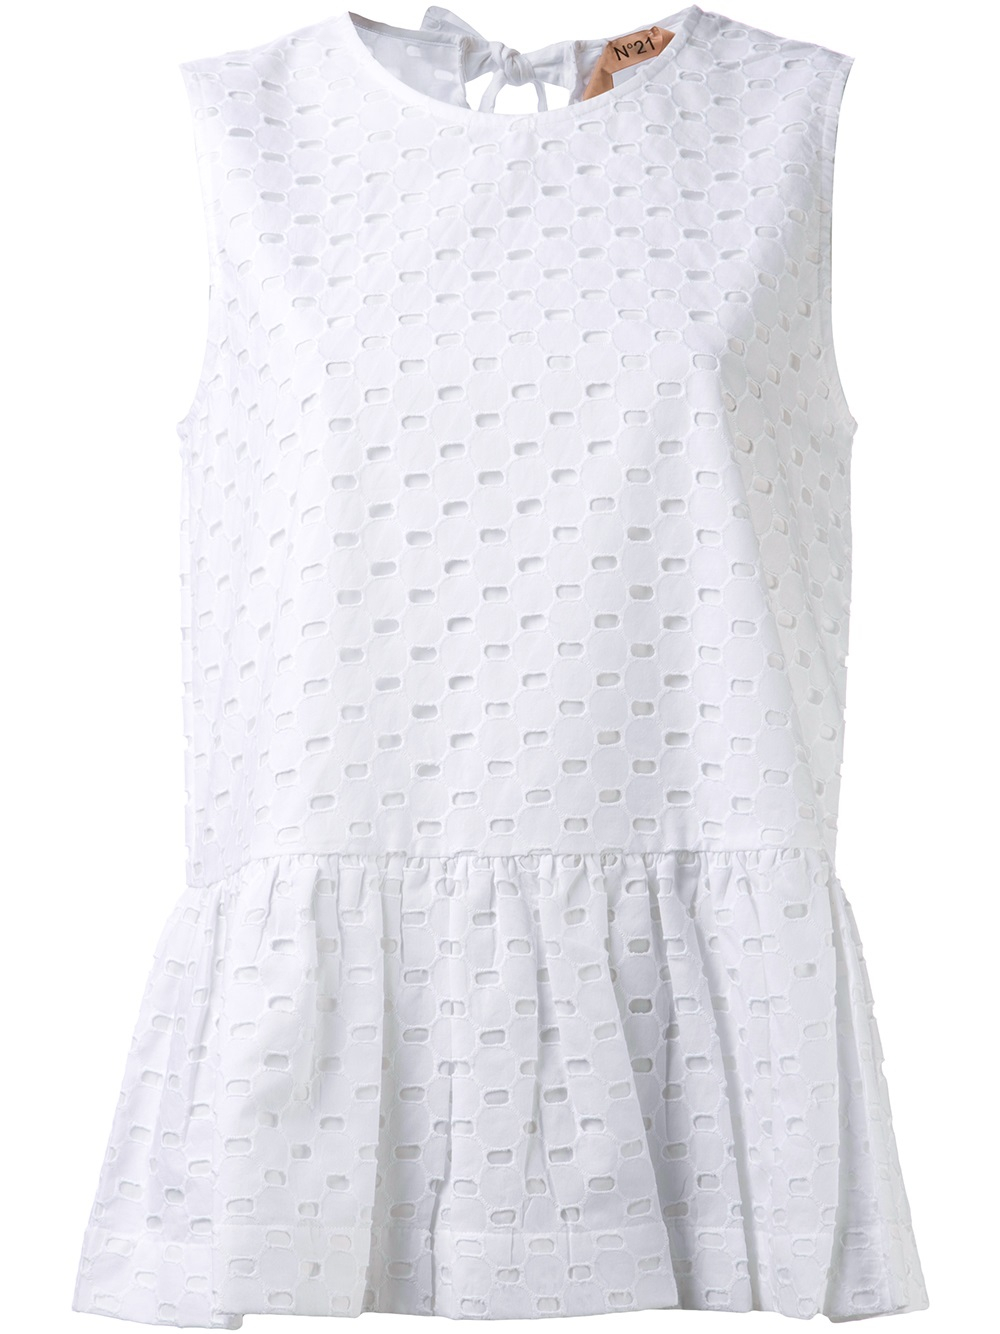 N°21 Eyelet Blouse in White | Lyst